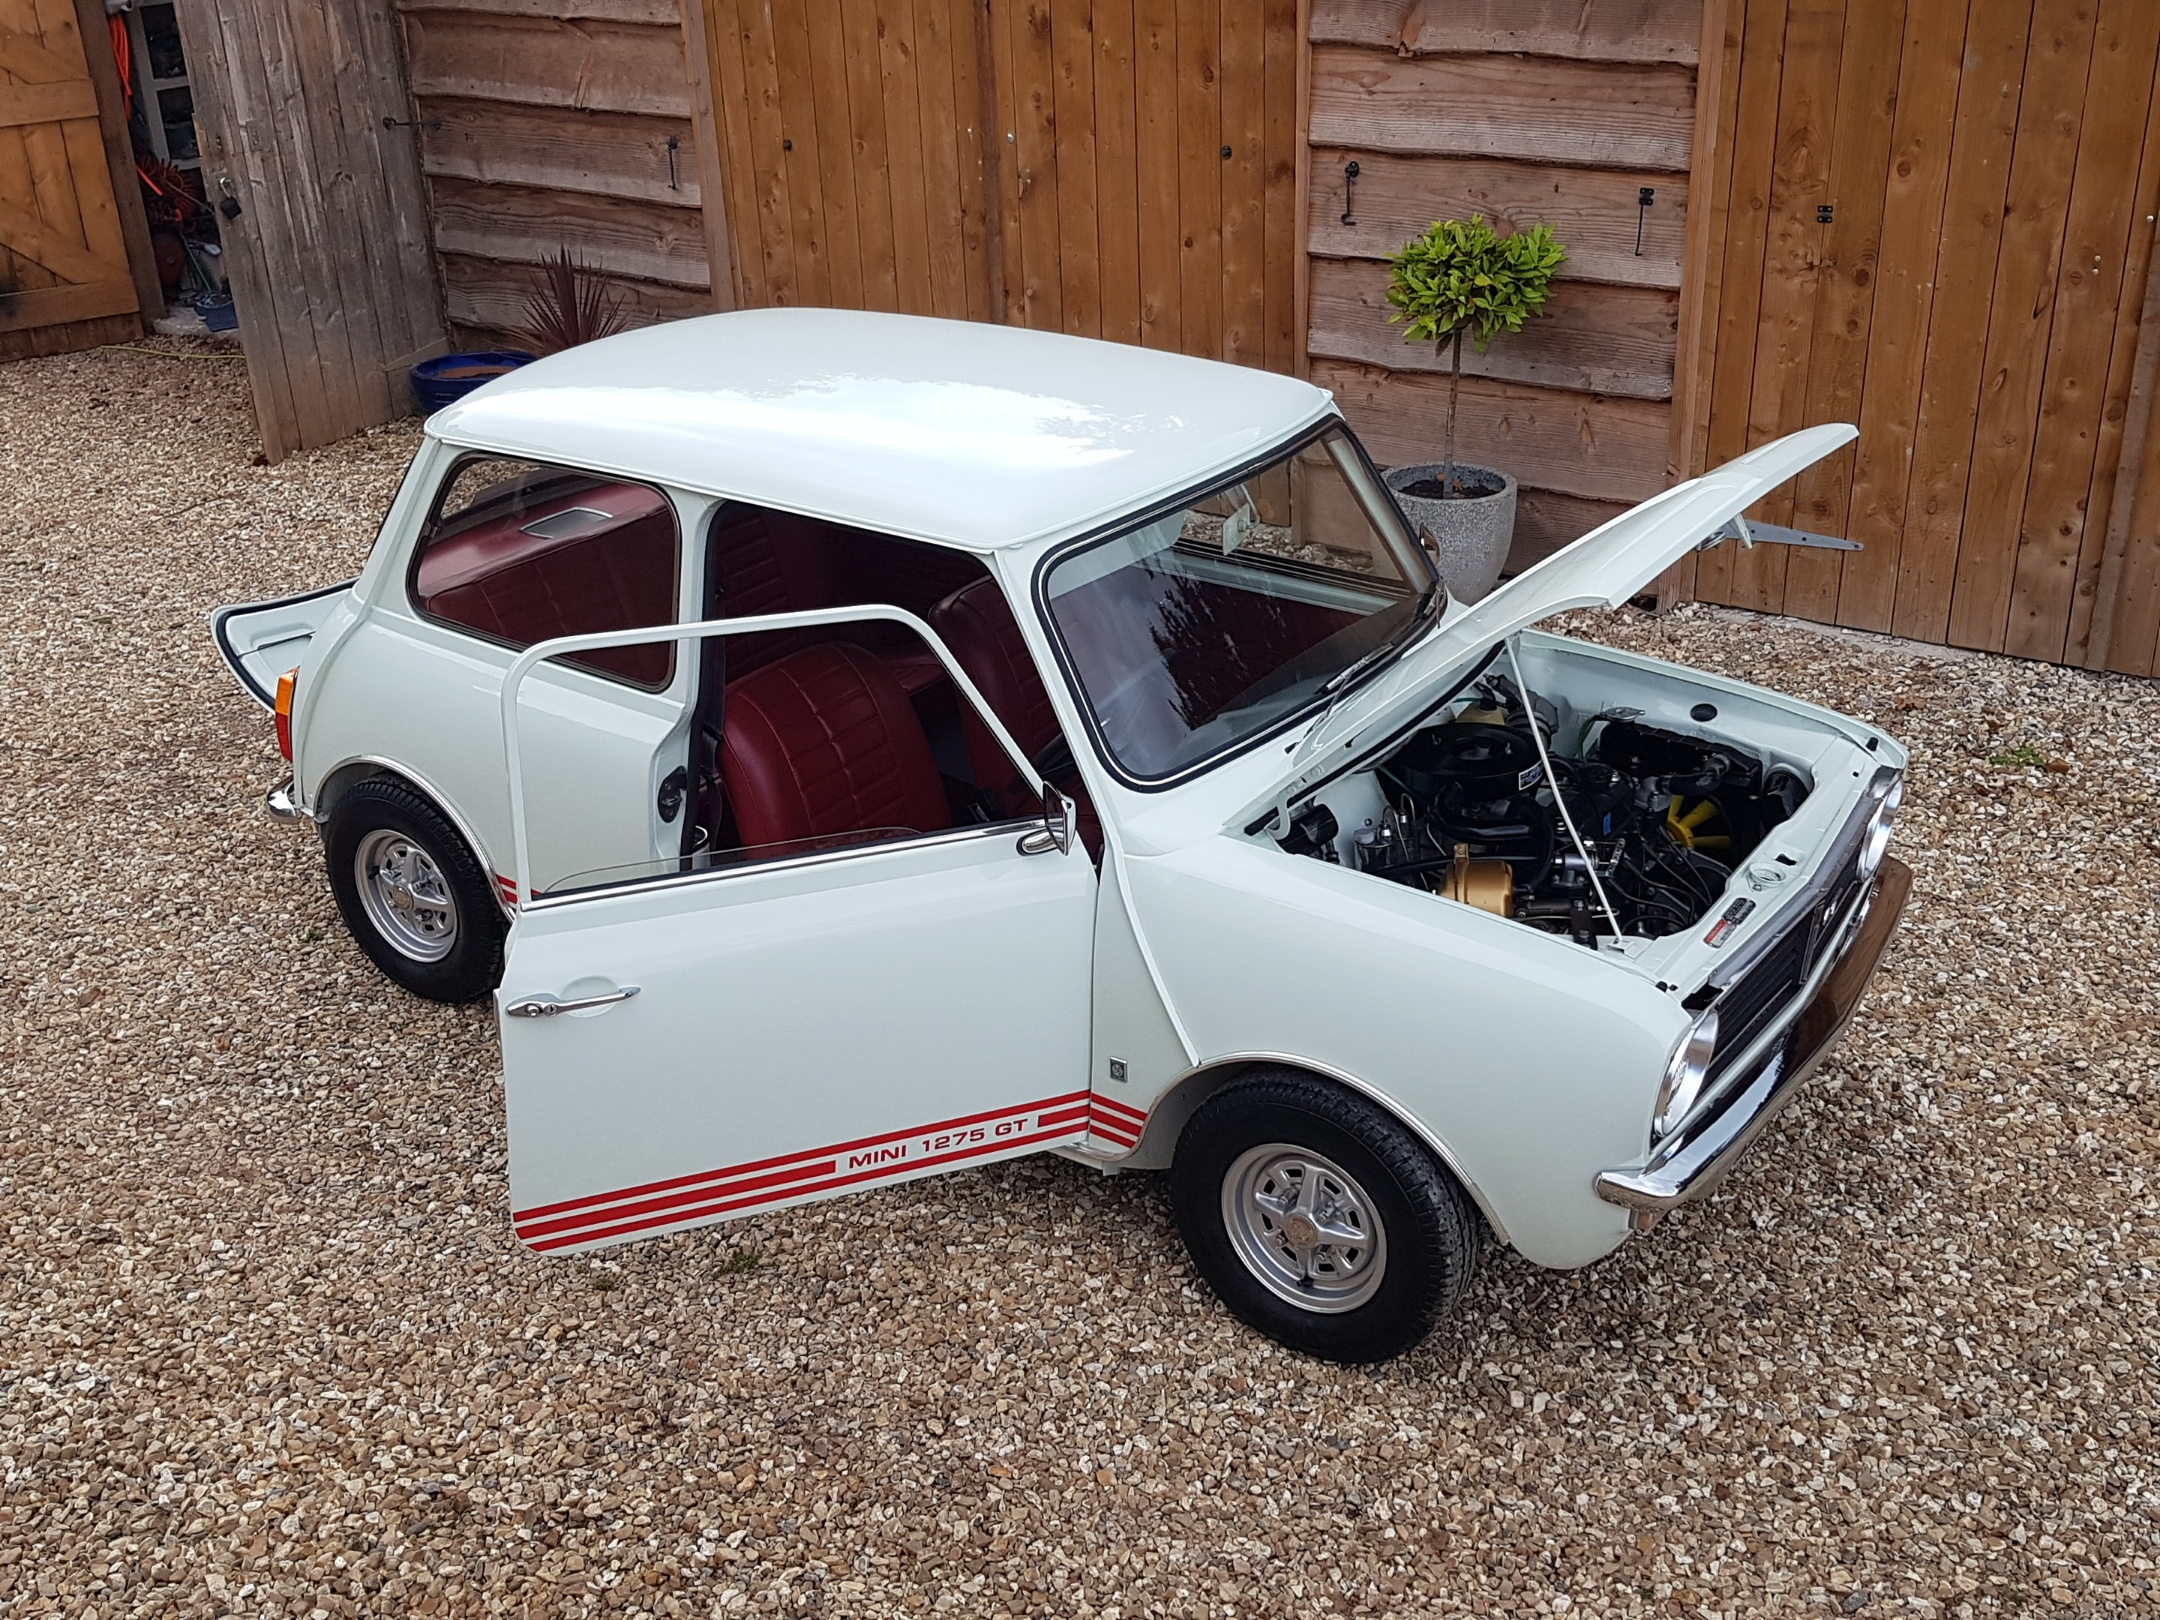 ** DEPOSIT PAID ** 1972 Morris Mini 1275 GT in Immaculate Condition.